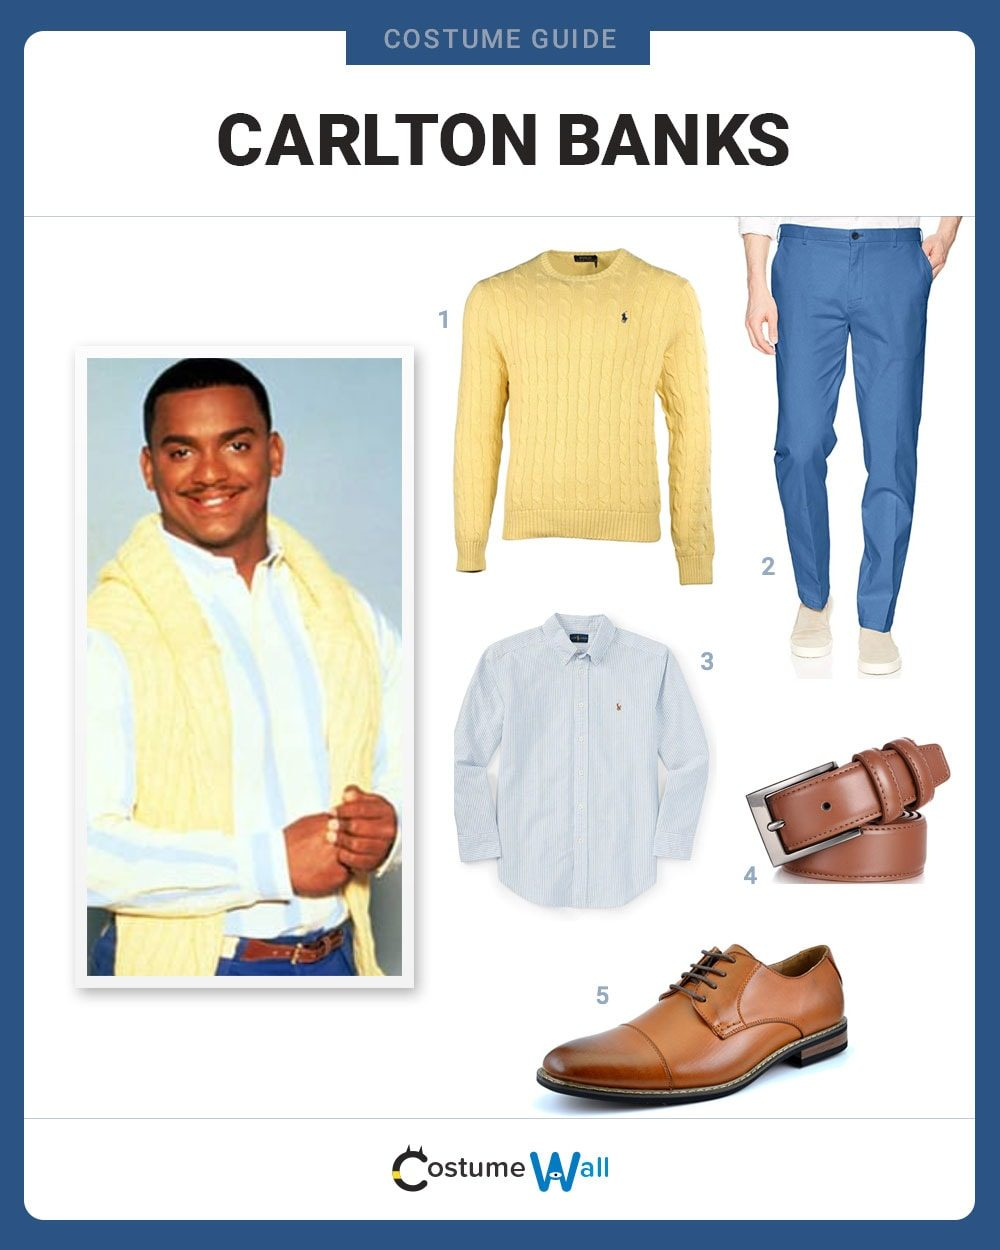 Carlton Banks Costume Guide